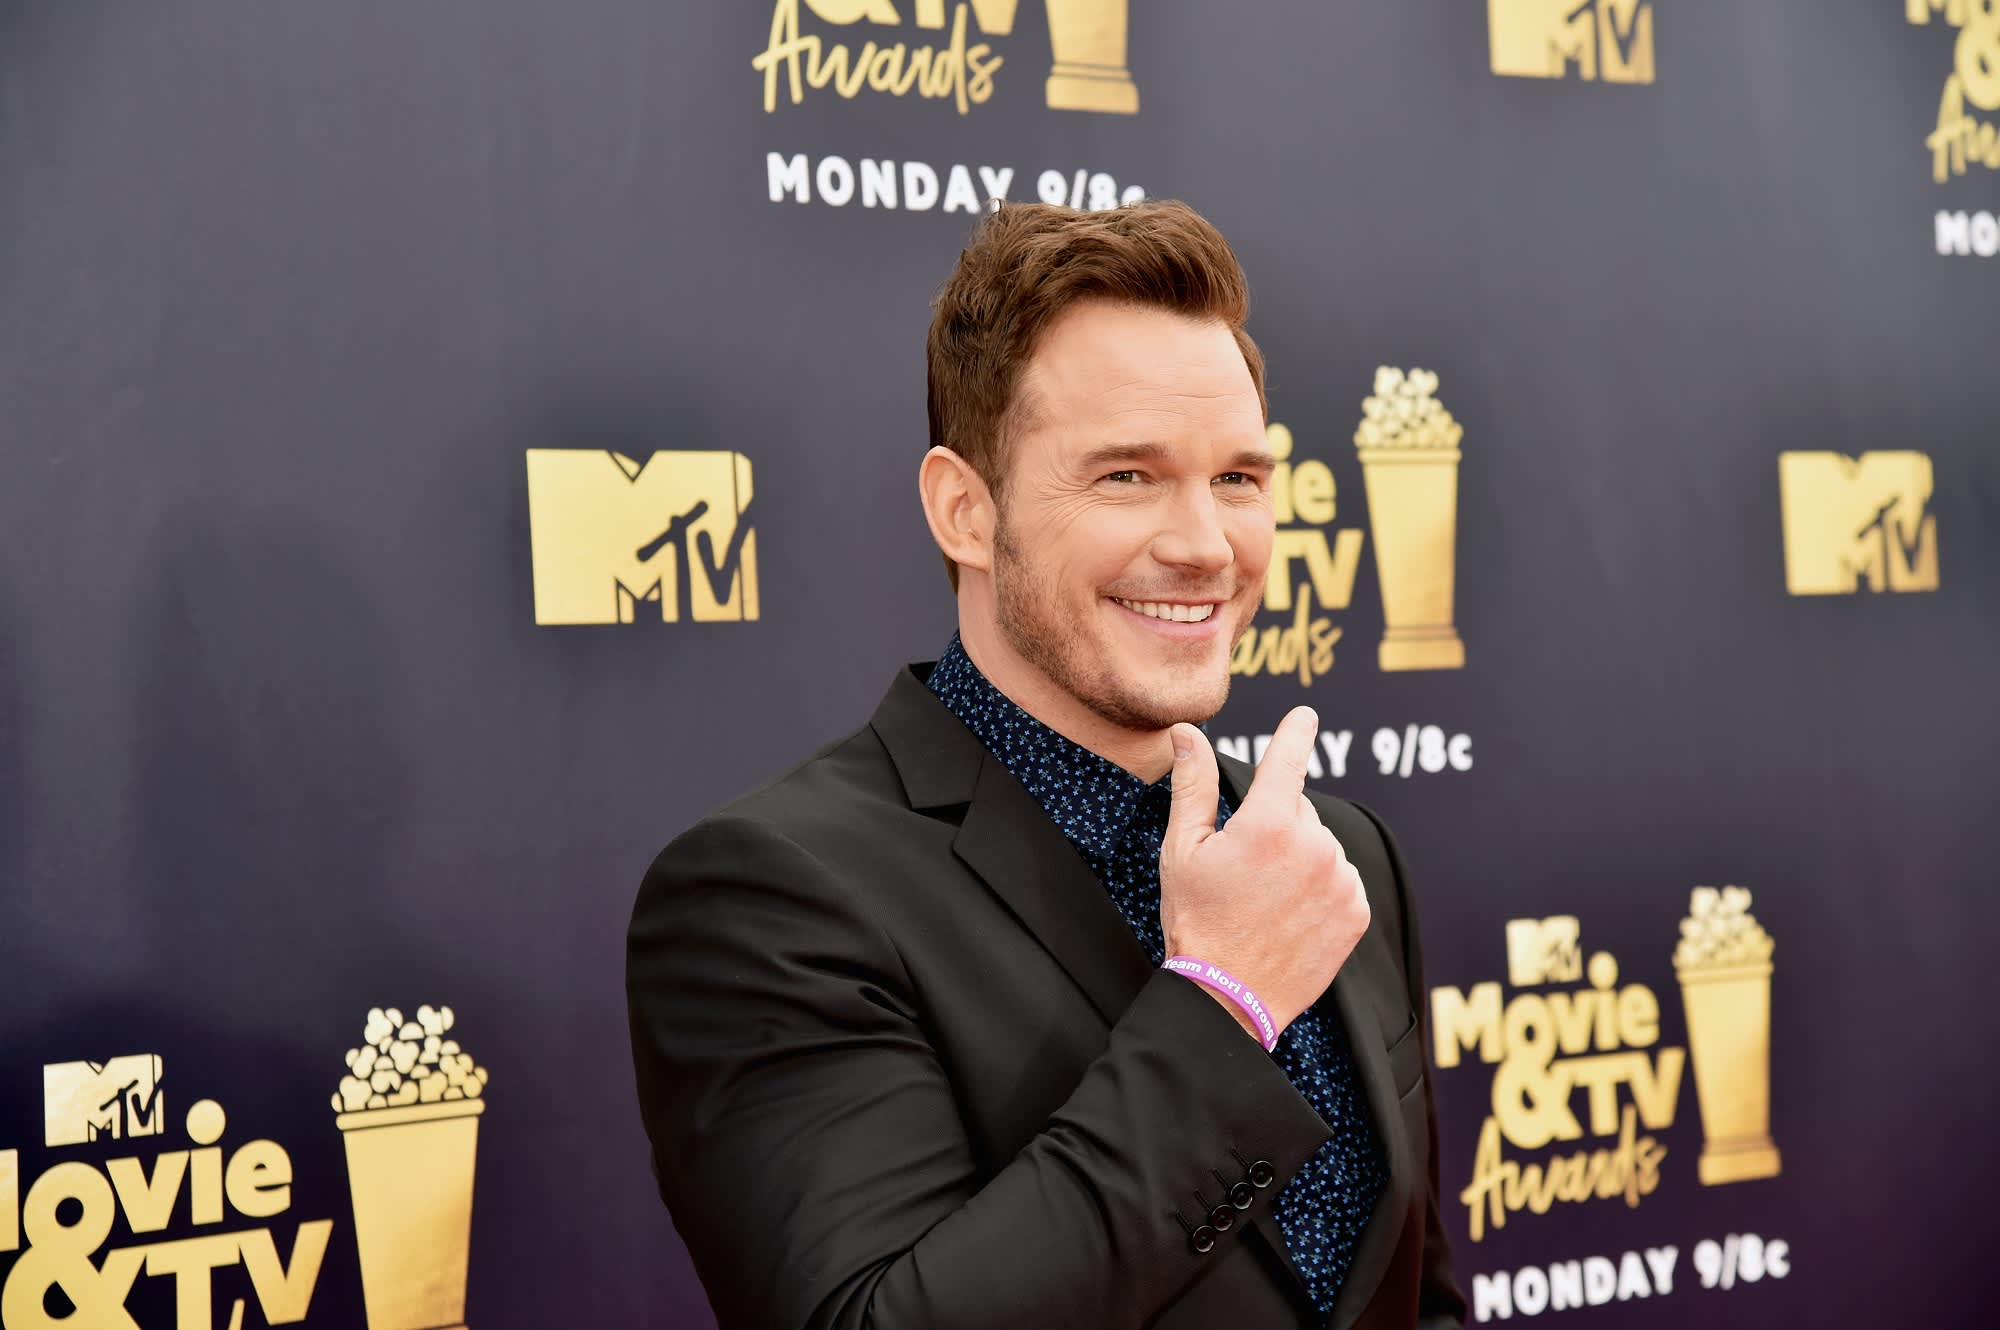 9 Chris Pratt Stories That Make It Hard to Read the New Anna Faris Book forecast